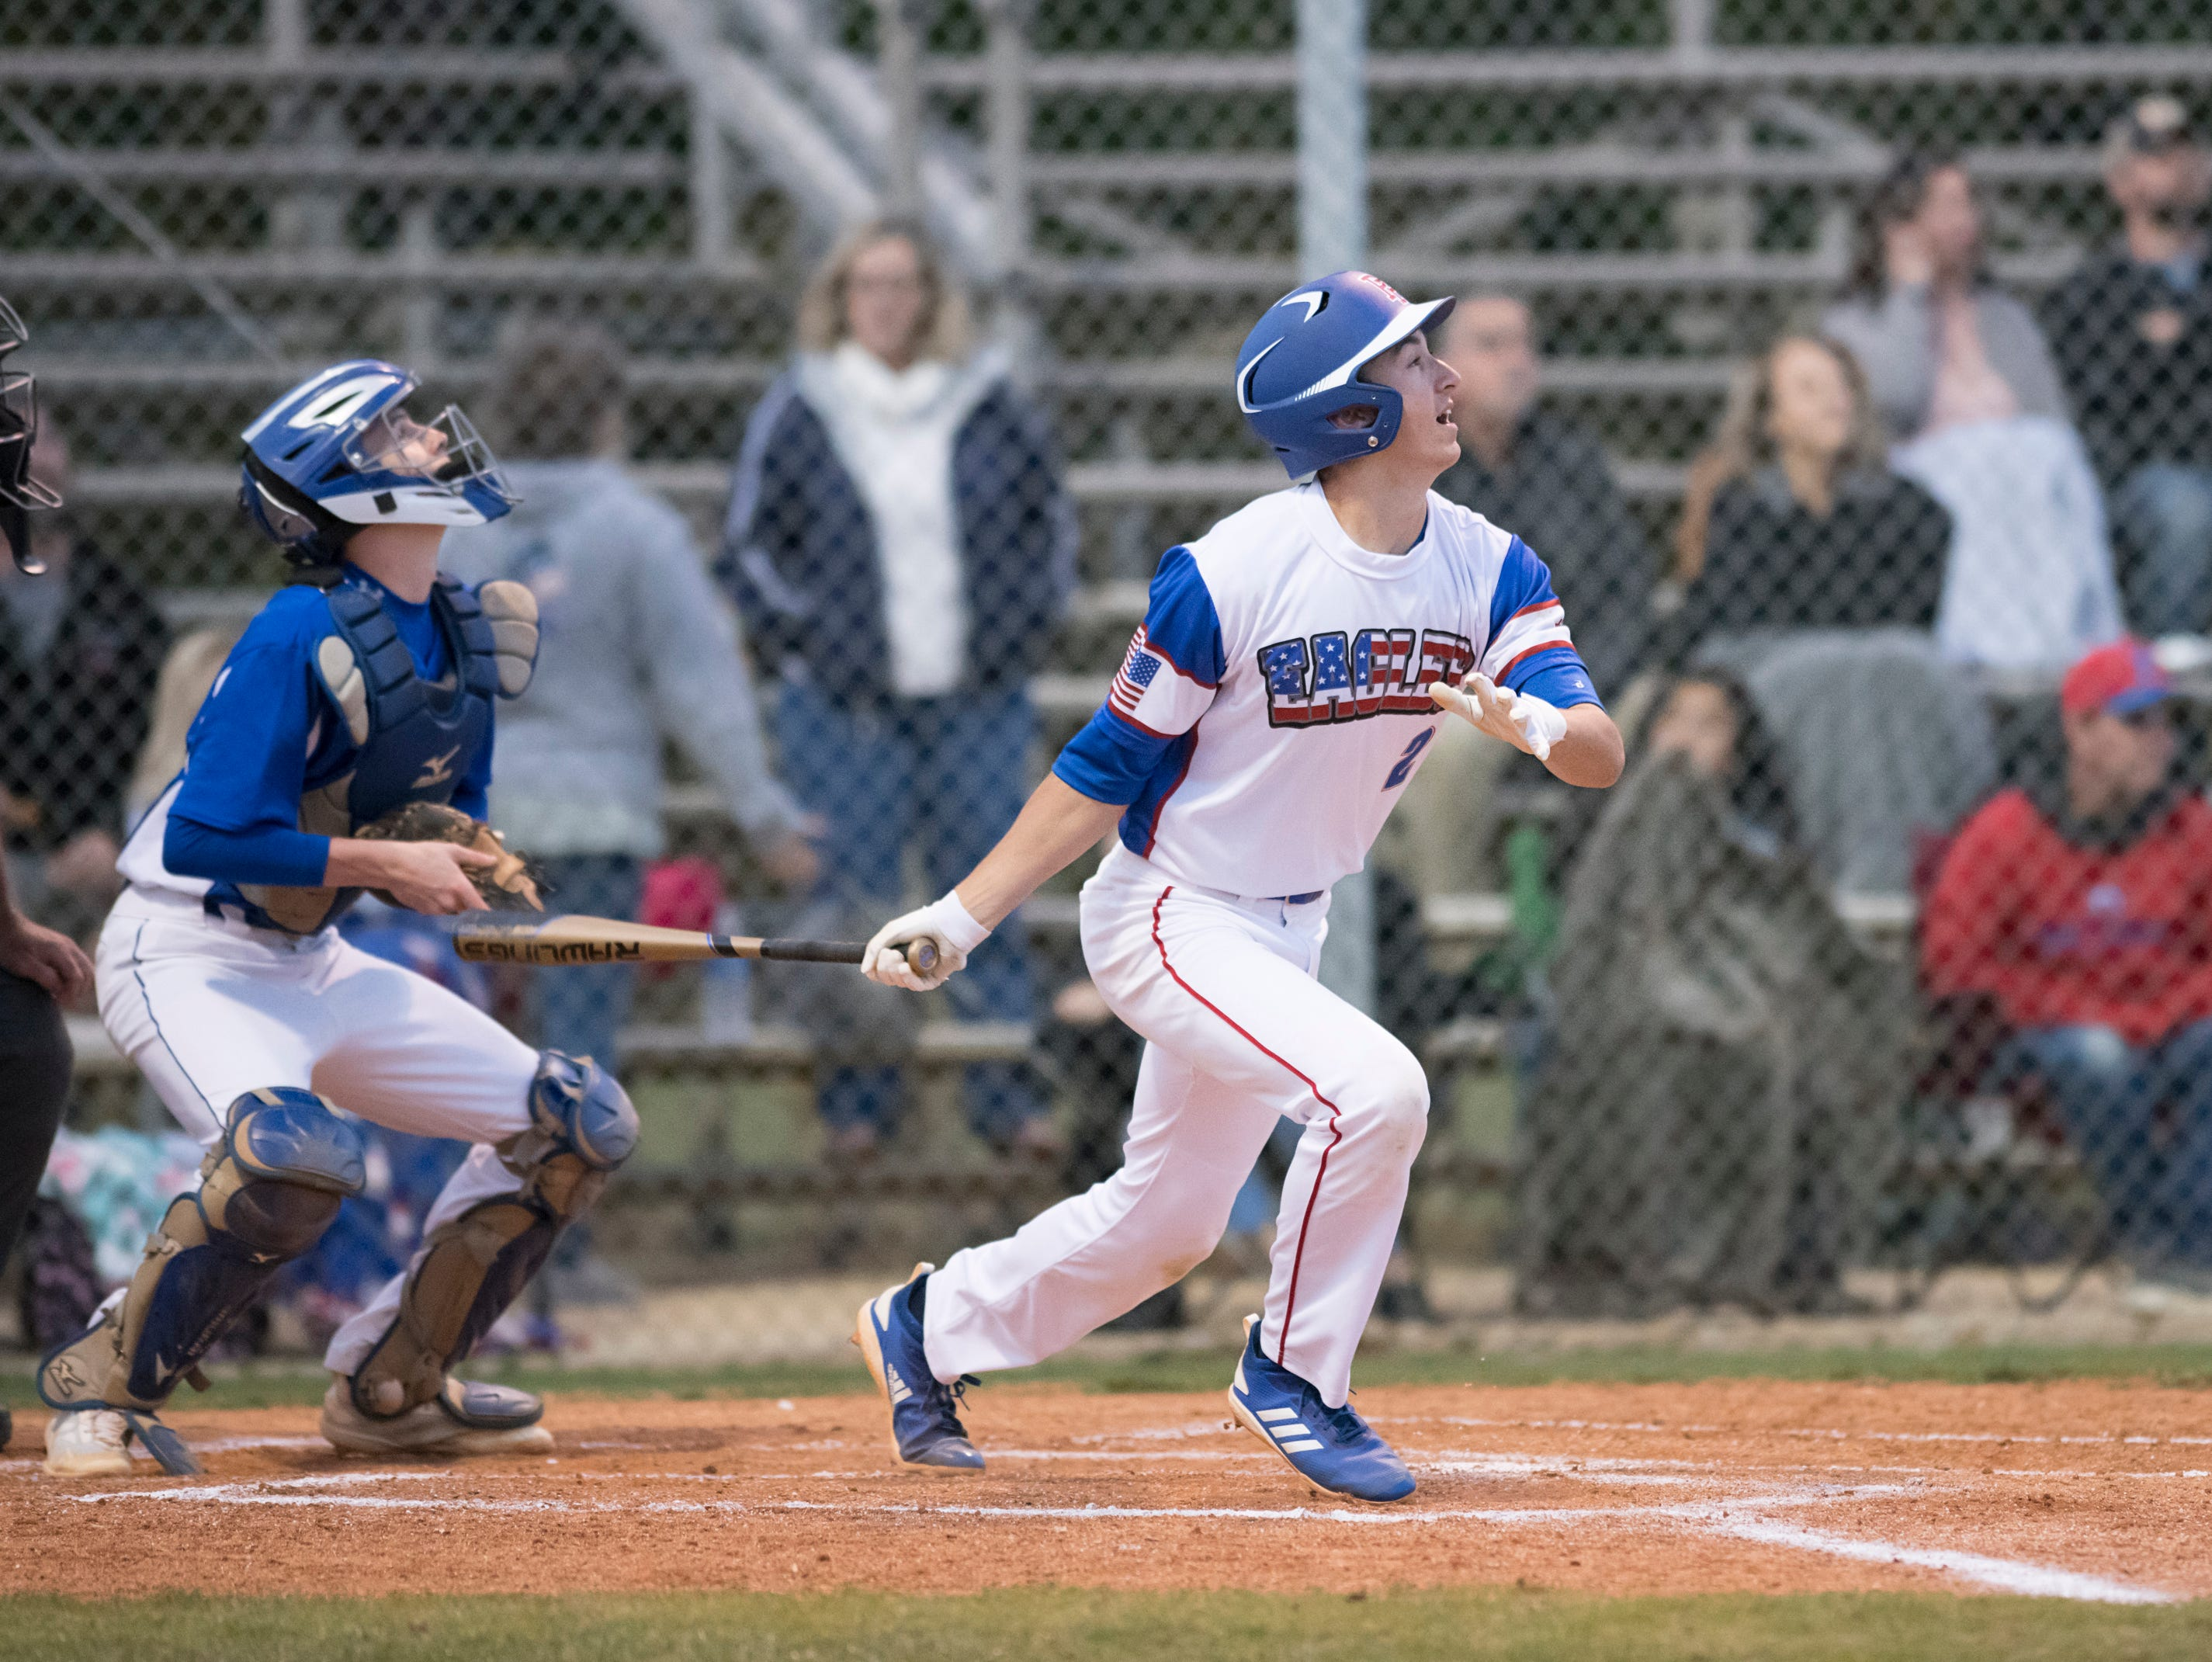 John Pinette (2) follows the ball after making contact during the Christian Educational Consortium vs Pine Forest baseball game at Pine Forest High School in Pensacola on Wednesday, April 3, 2019.